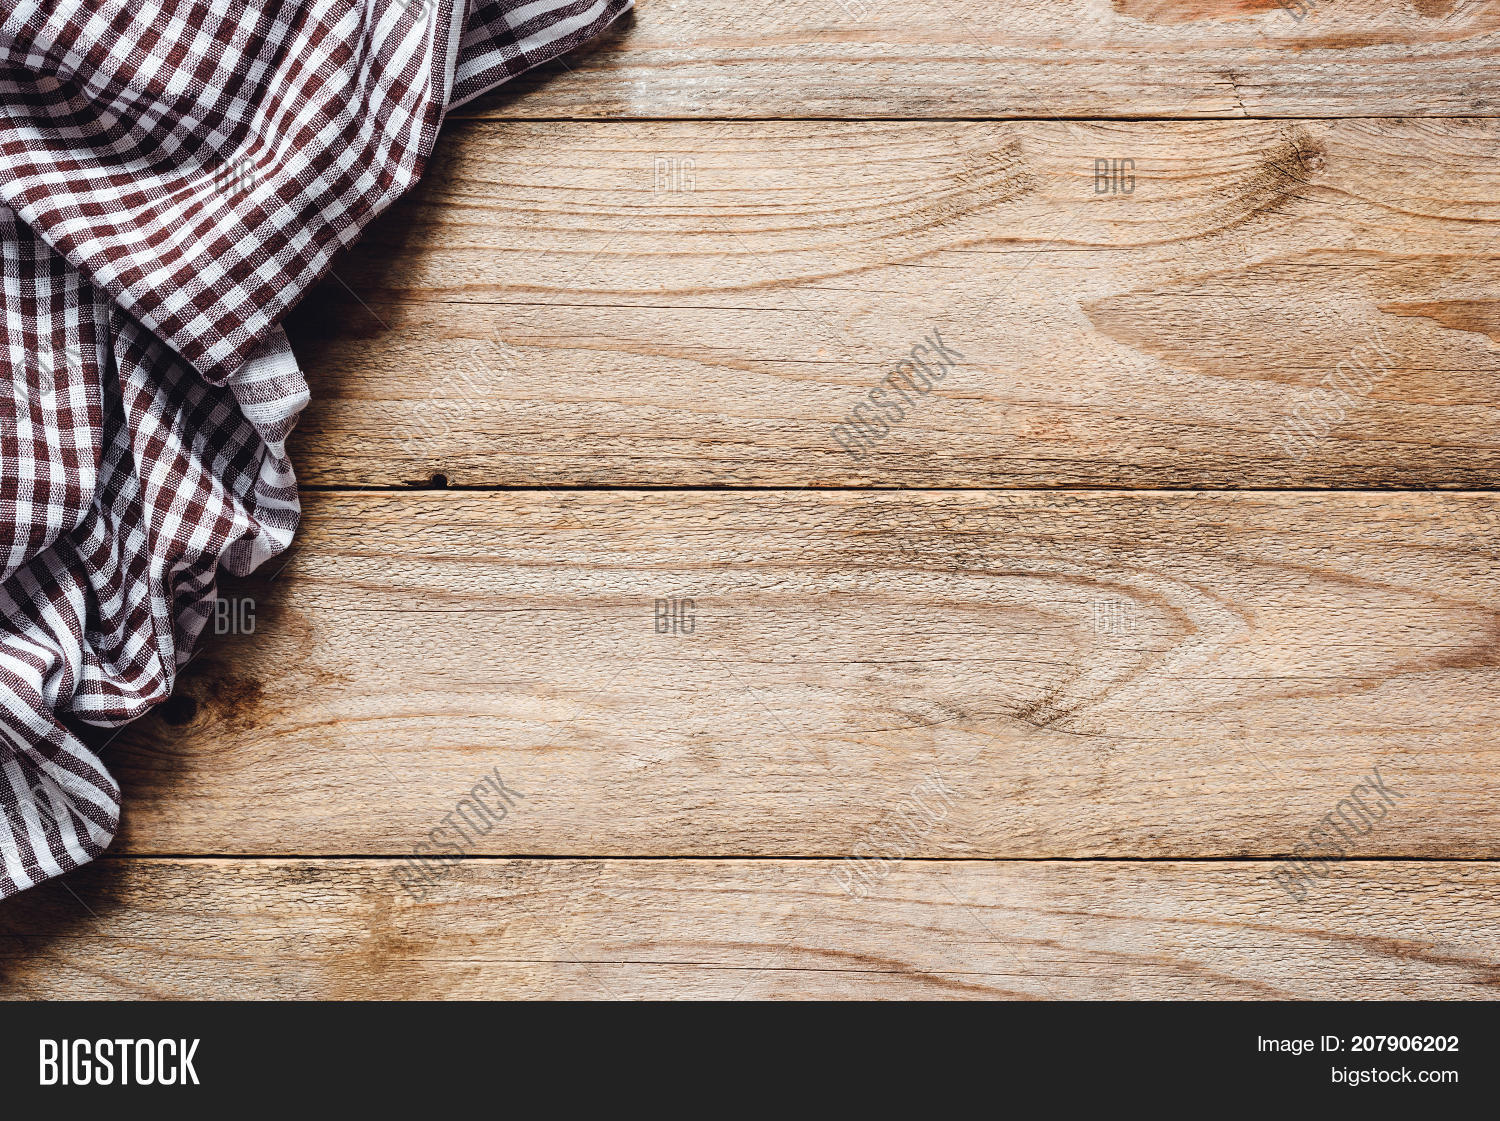 Wooden Table Image & Photo (Free Trial) | Bigstock